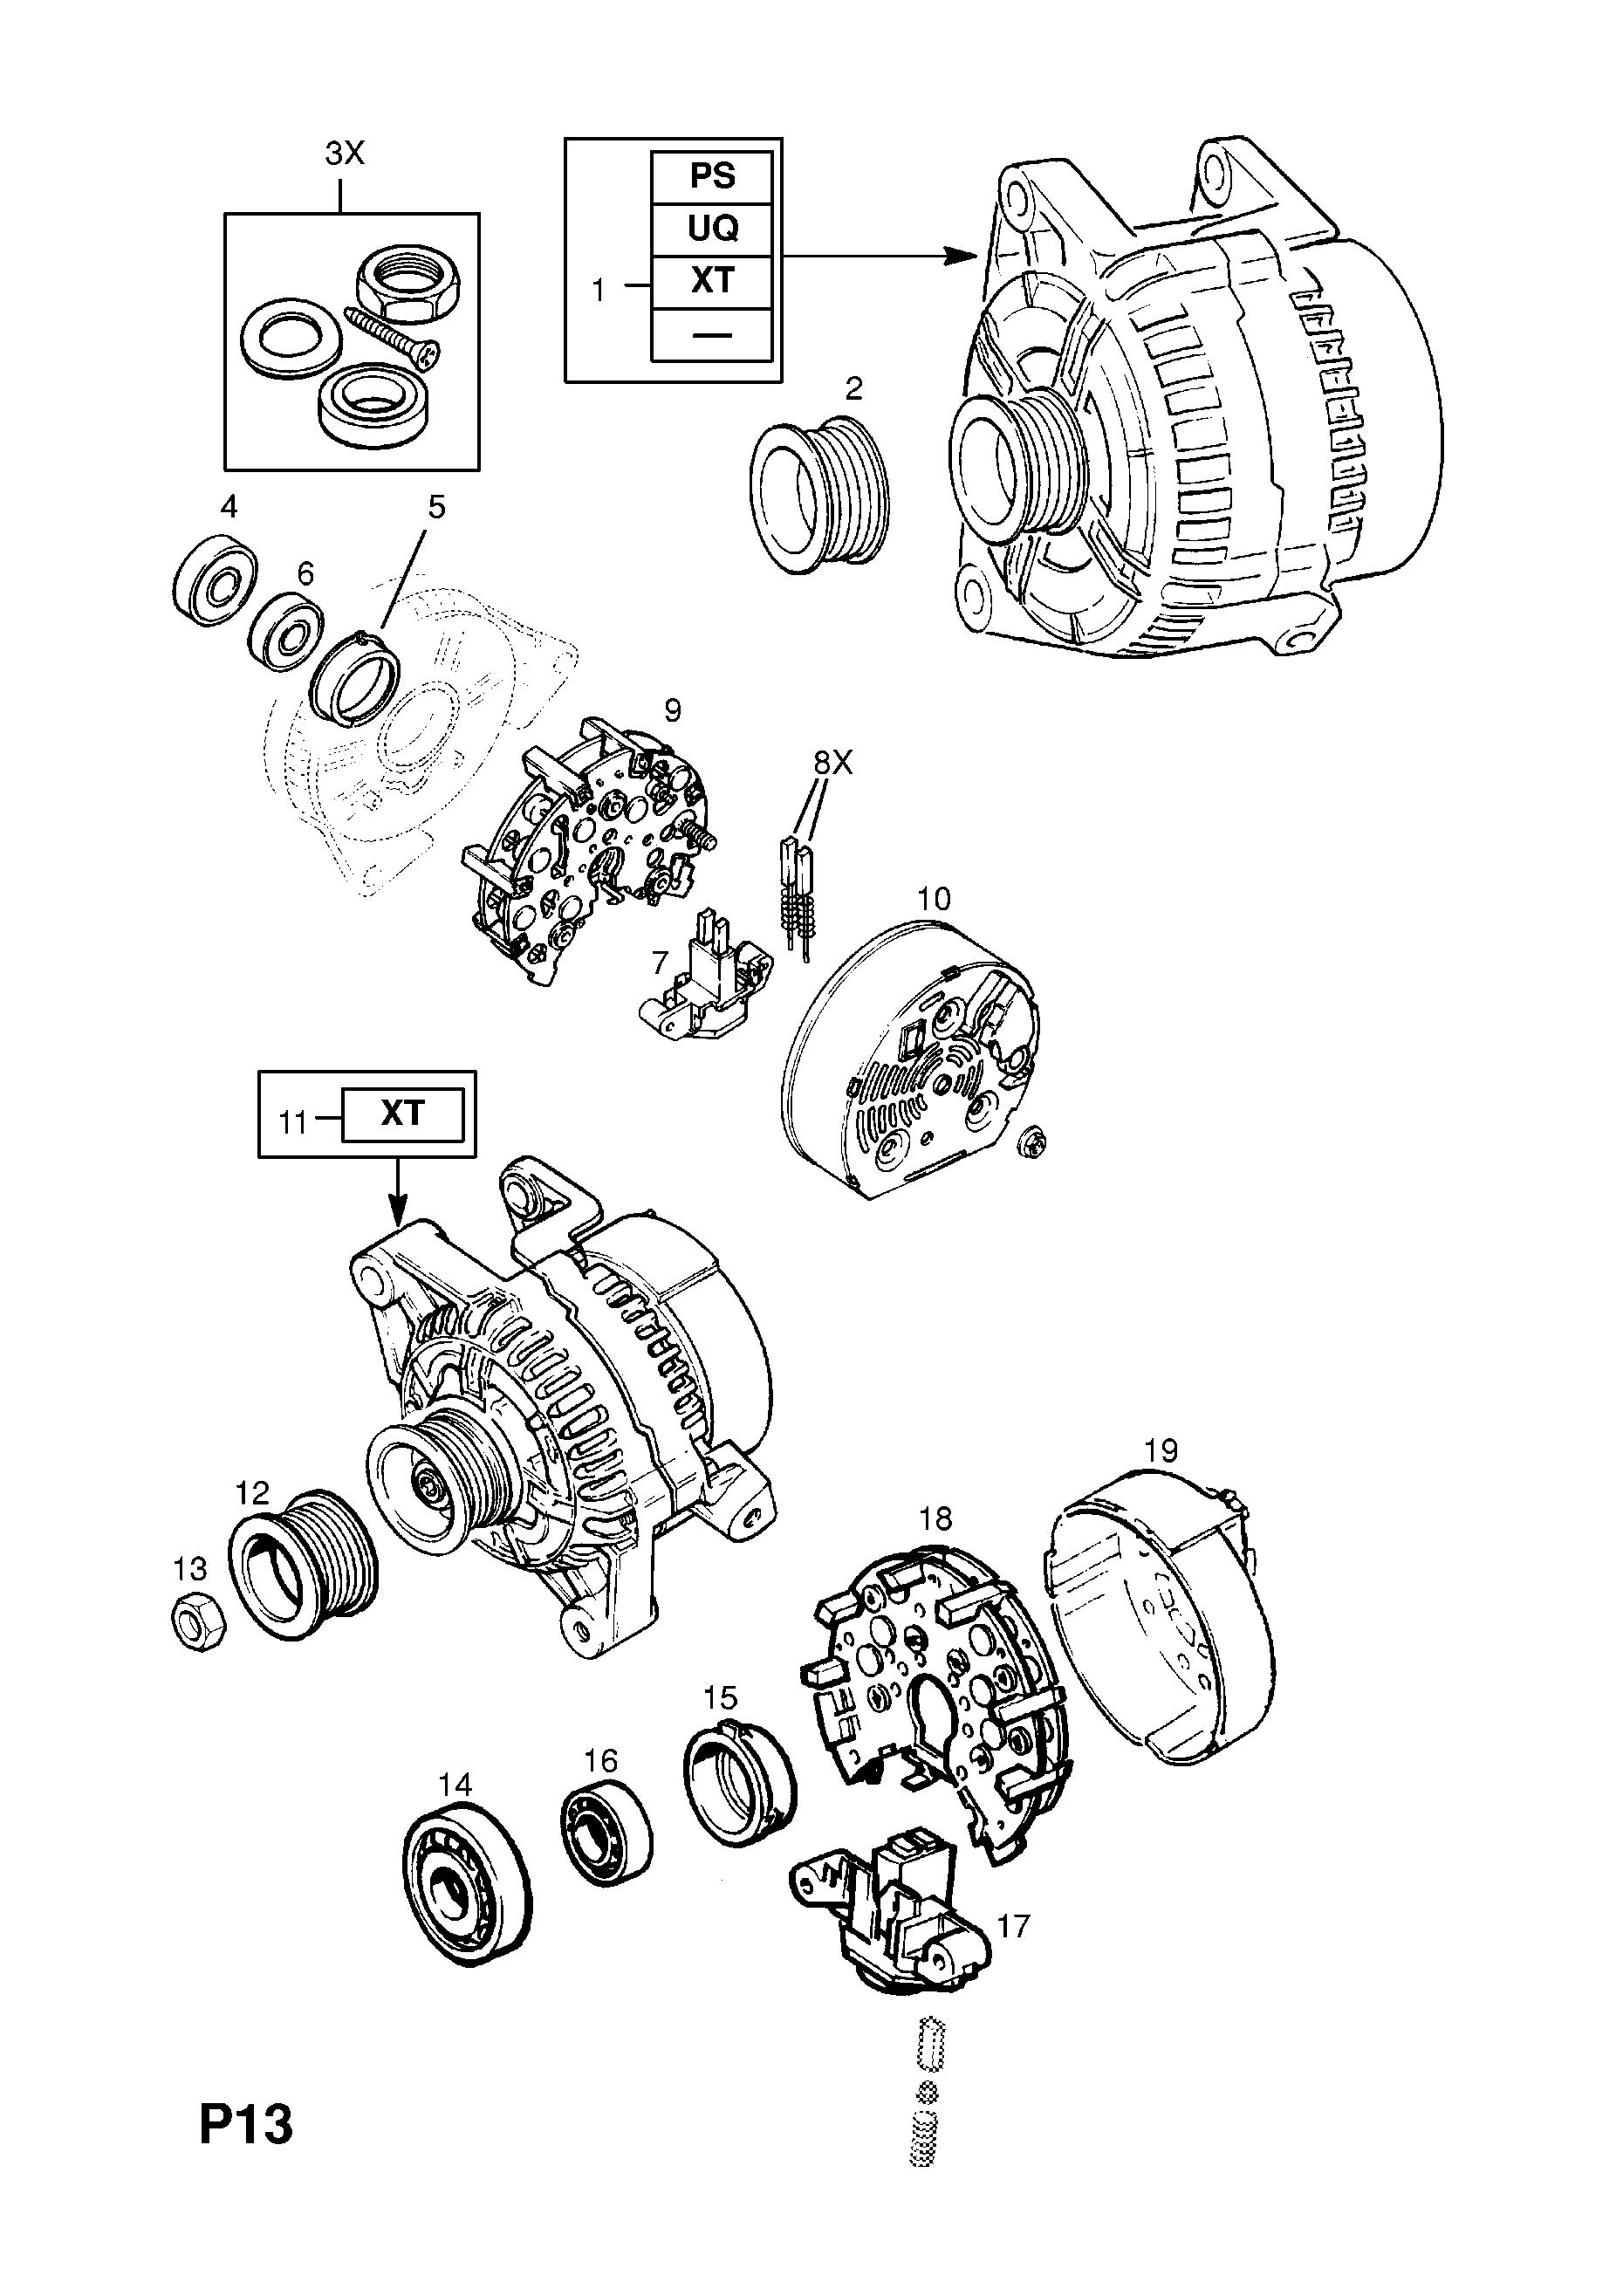 Vauxhall Vectra B 1996 2002 P Electrical 1 Engine And Cooling Bosch Starter Motor Wiring Diagram List Of Parts